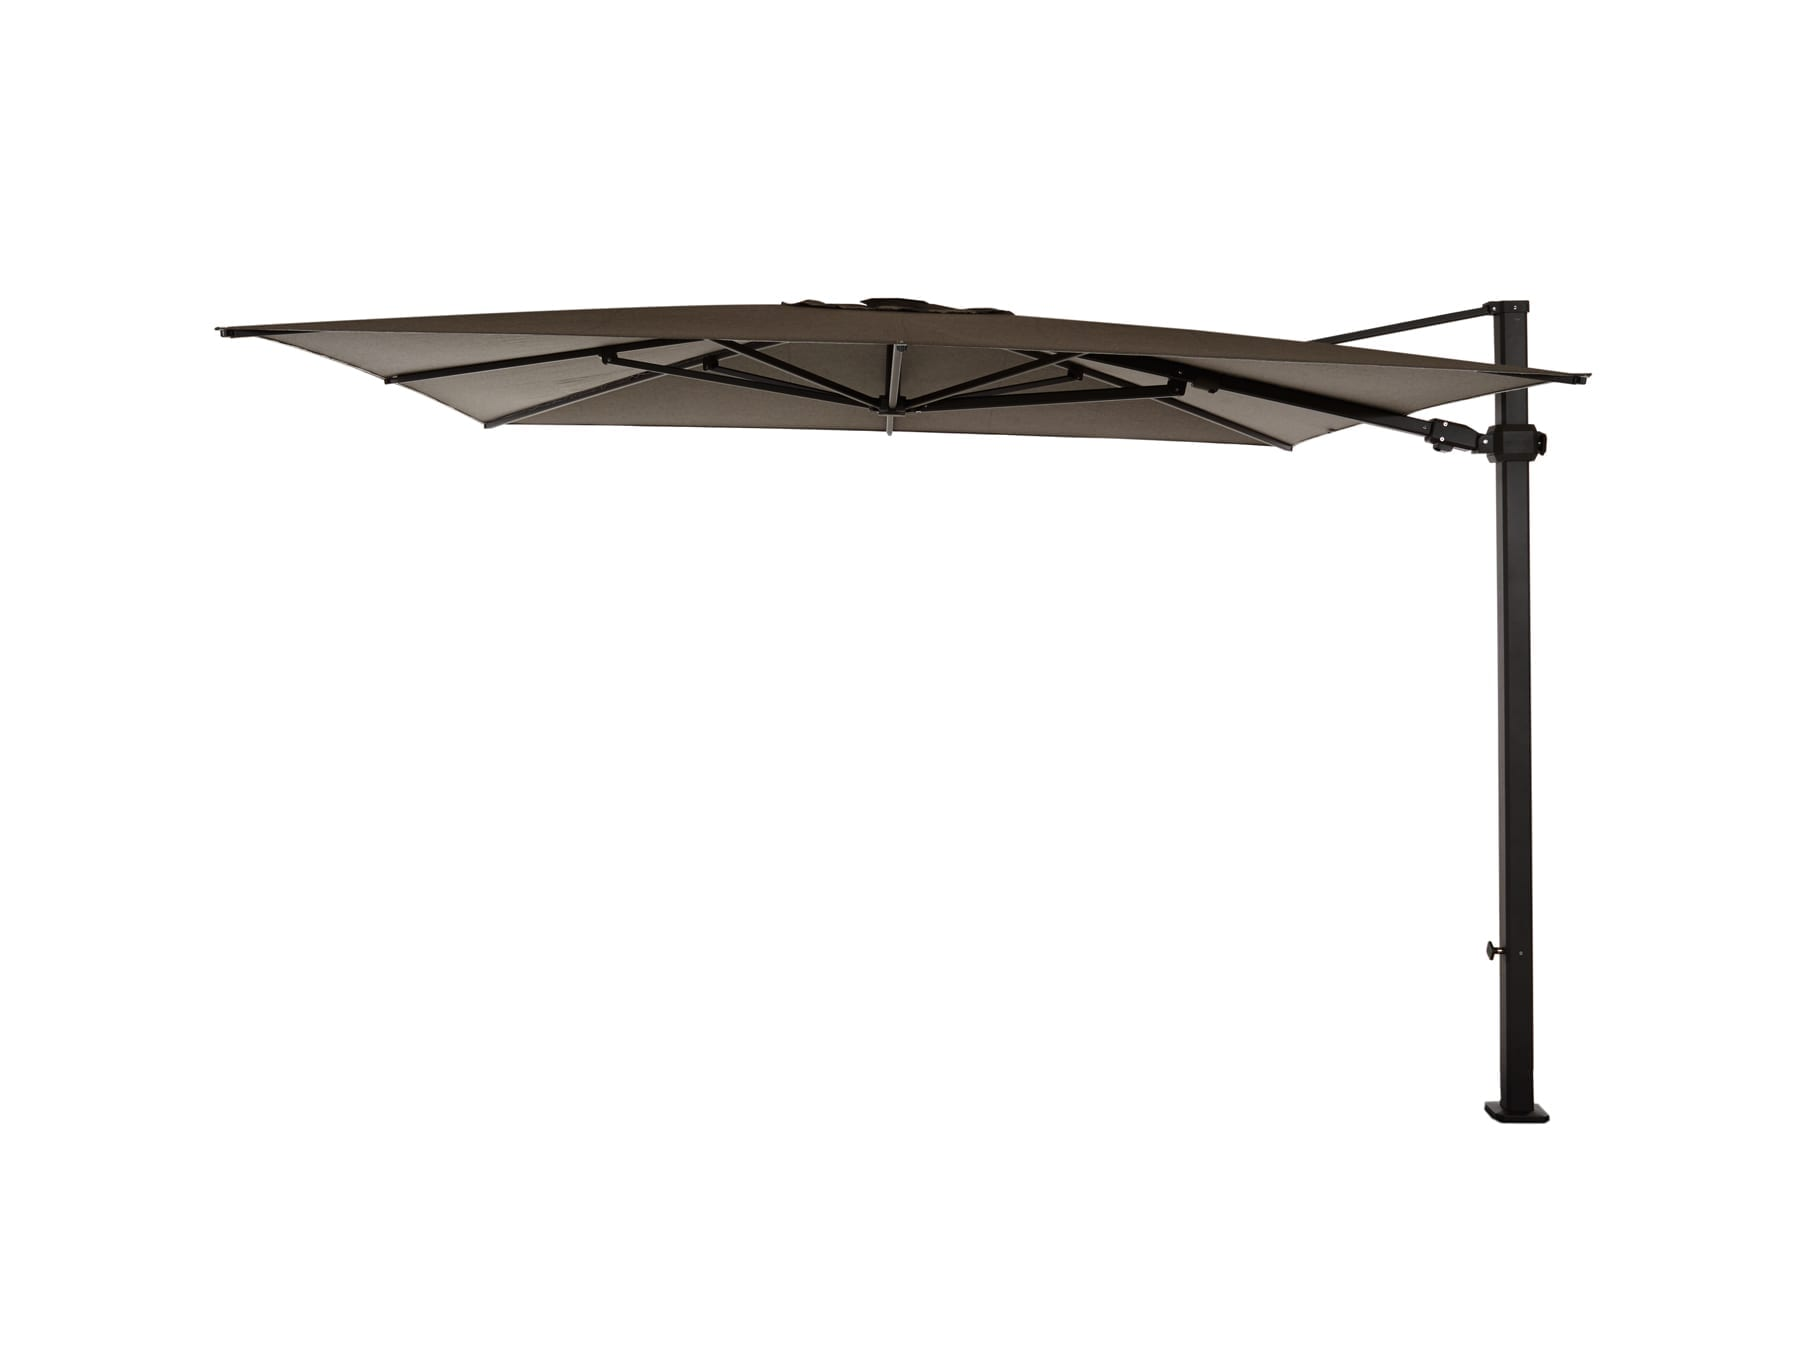 Jardinico Caractere 301 Umbrella available at McKenzie & Willis